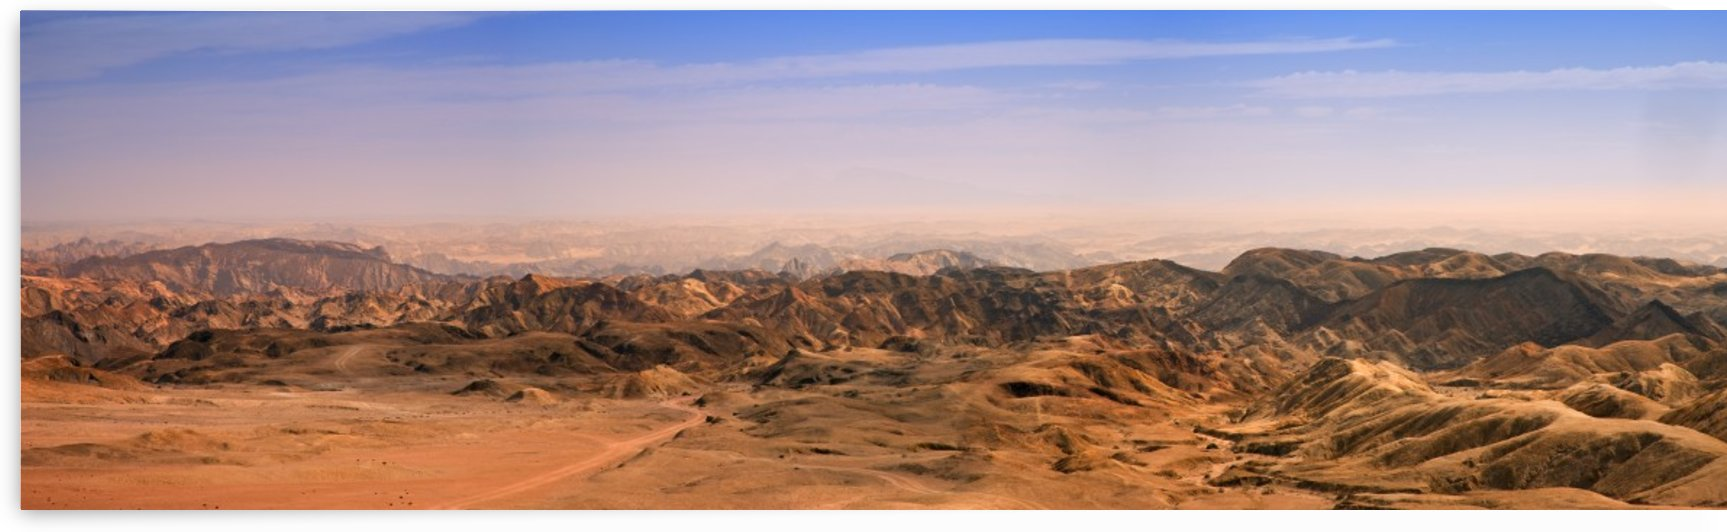 Desert, Namibia, Africa by PacificStock